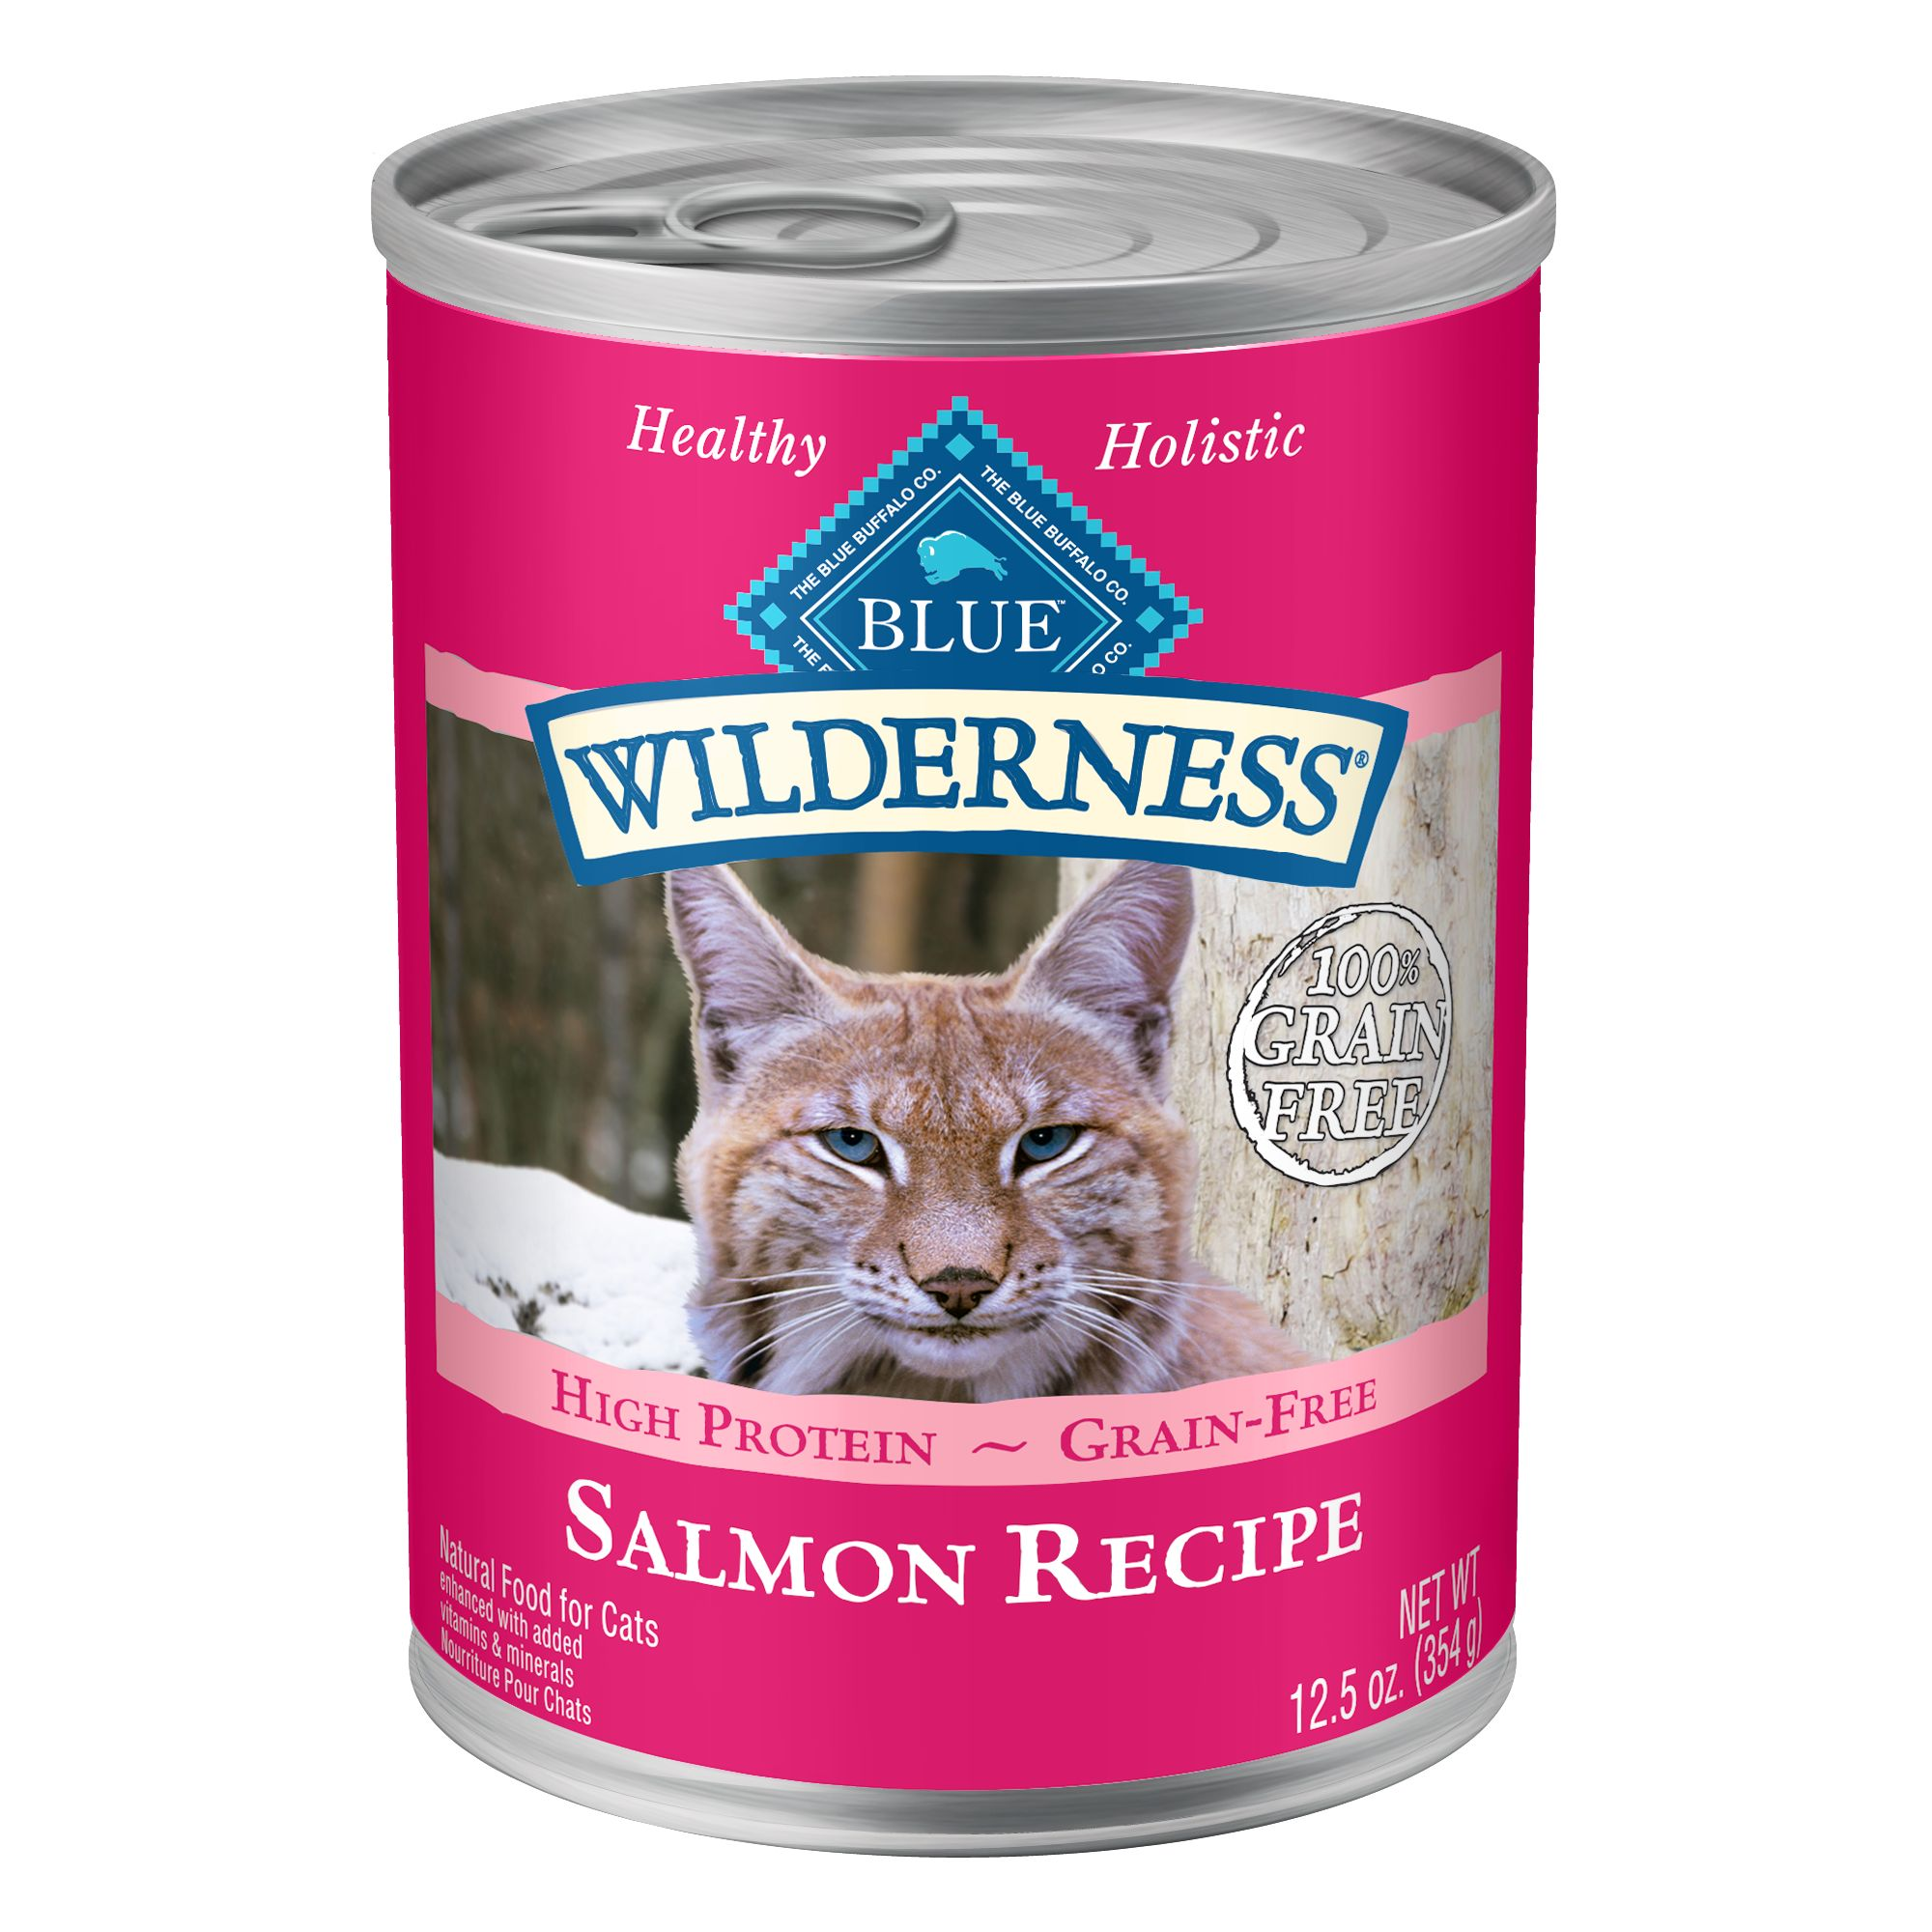 Blue Wilderness Adult Cat Food Natural Grain Free Salmon Size 12.5 Oz Blue Buffalo